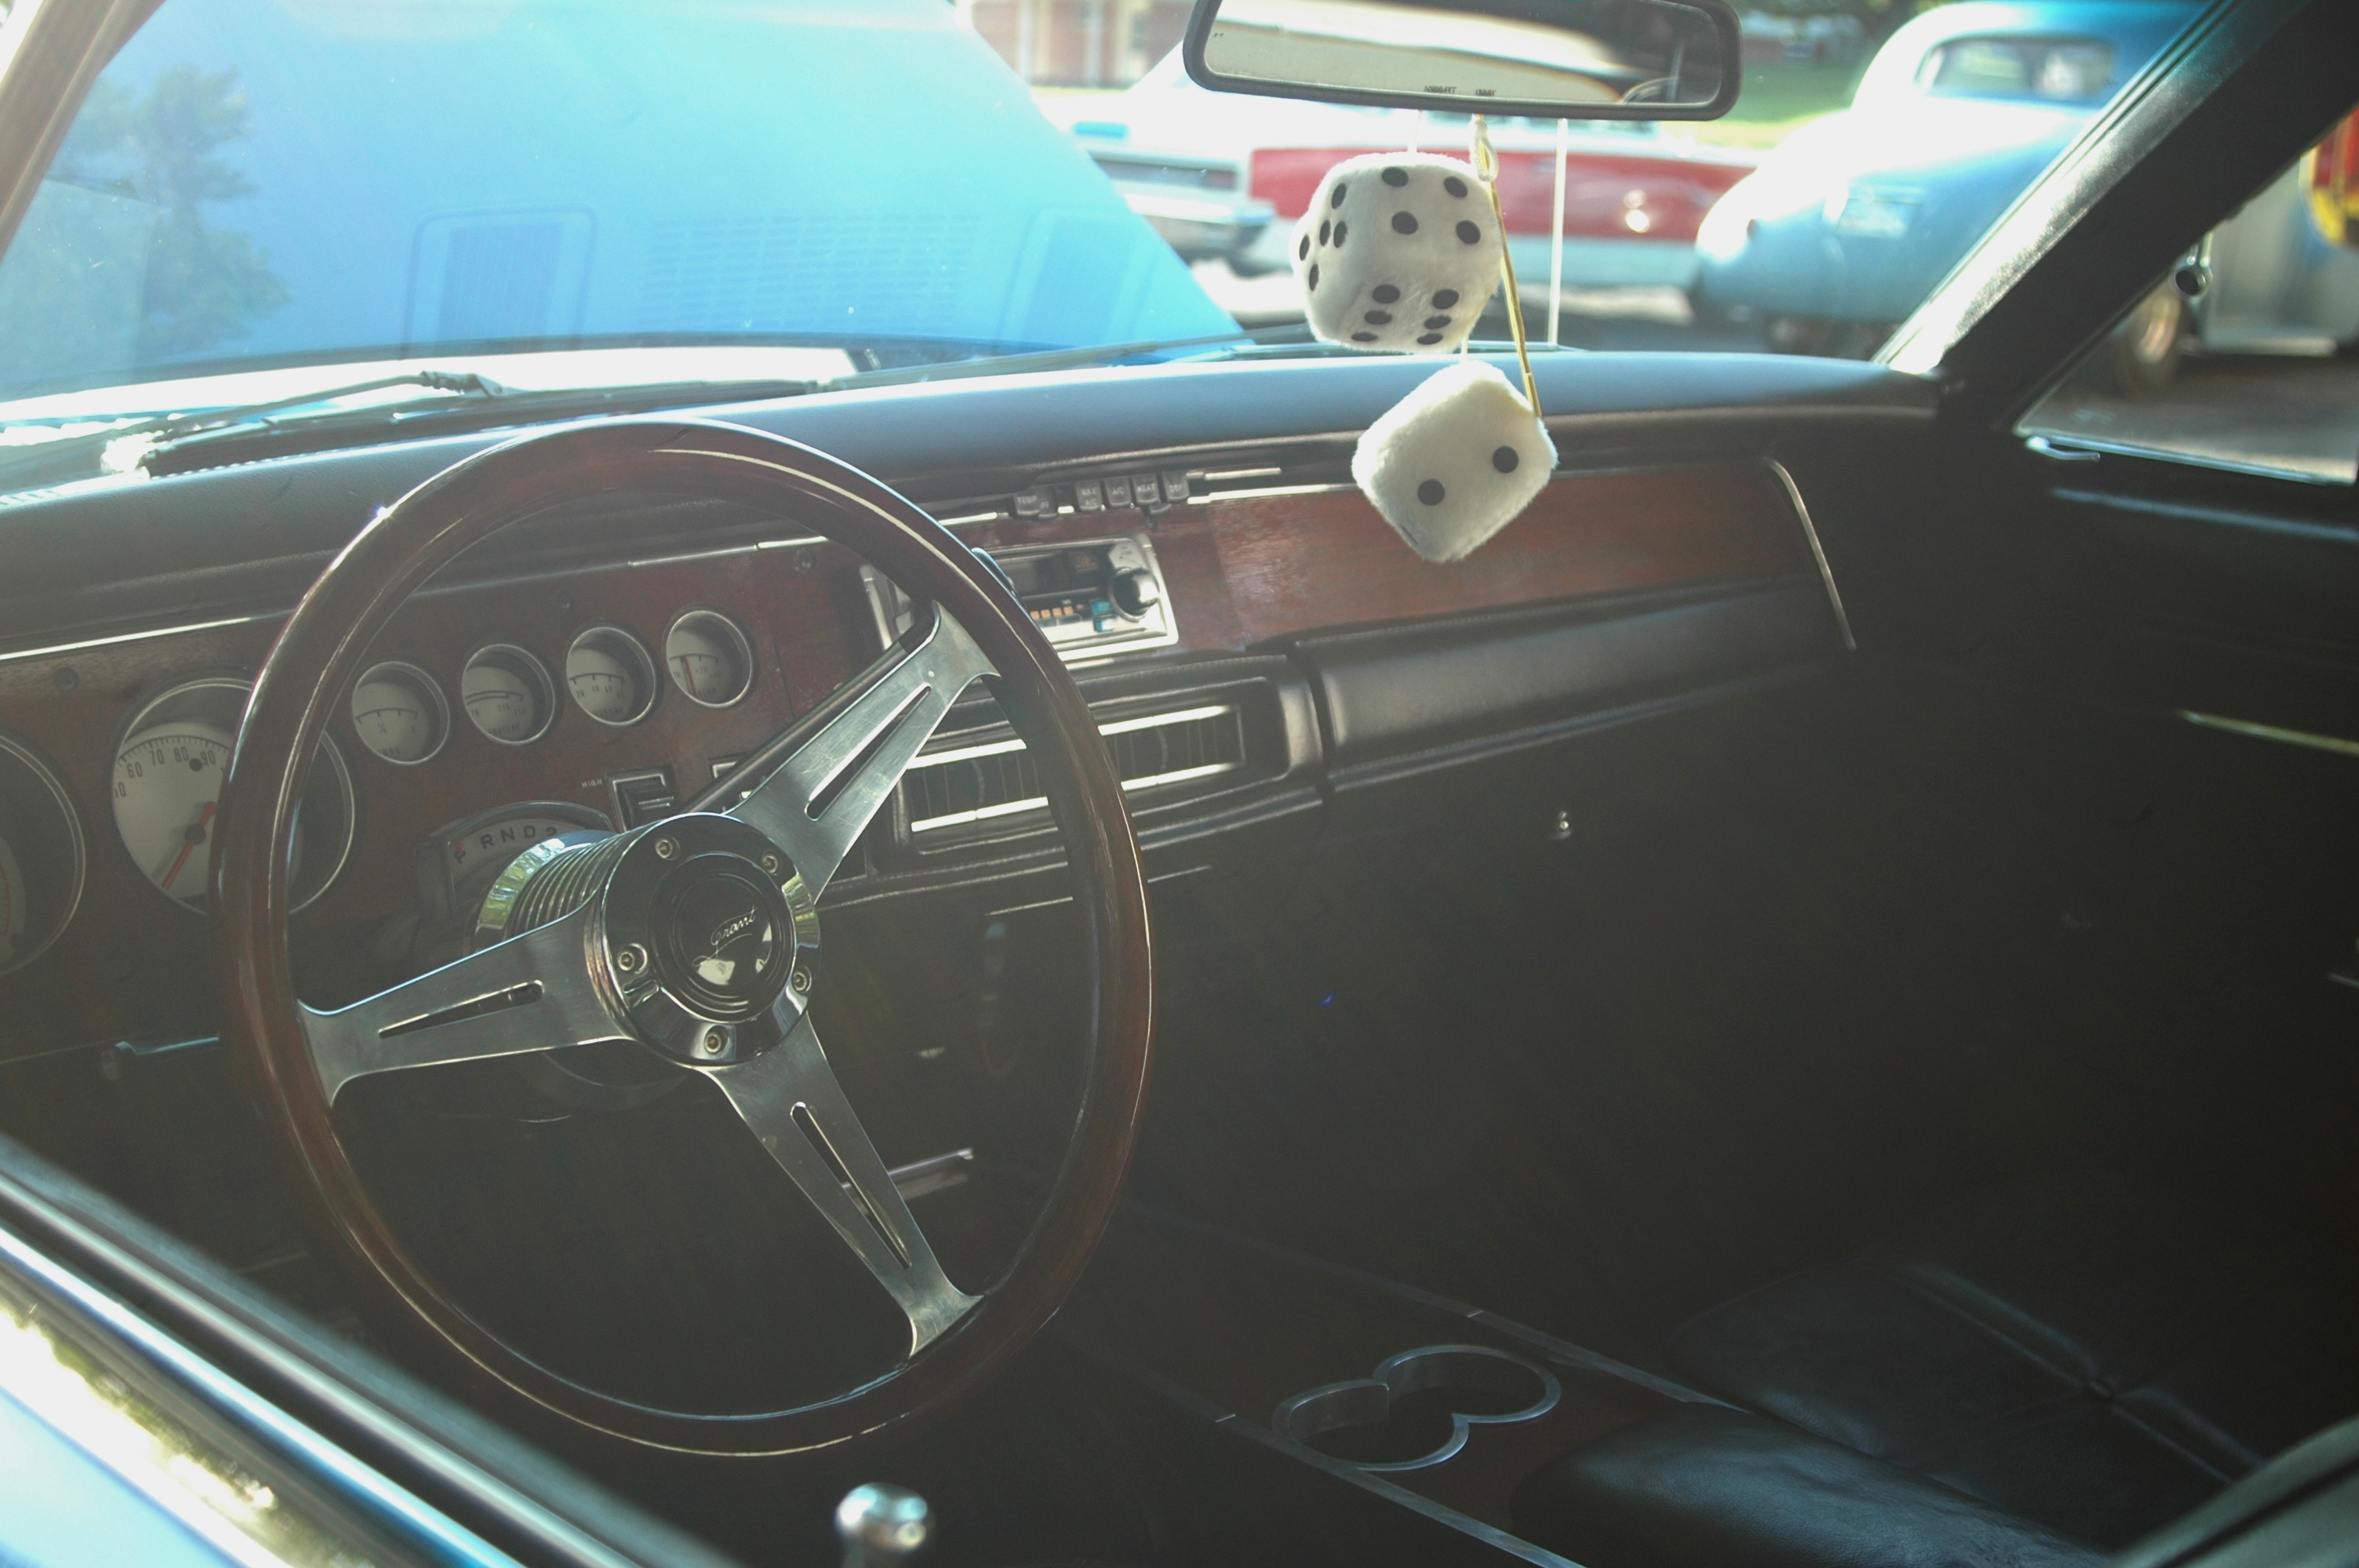 1969 Dodge Charger Red Interior 1969 Dodge Charger Interior